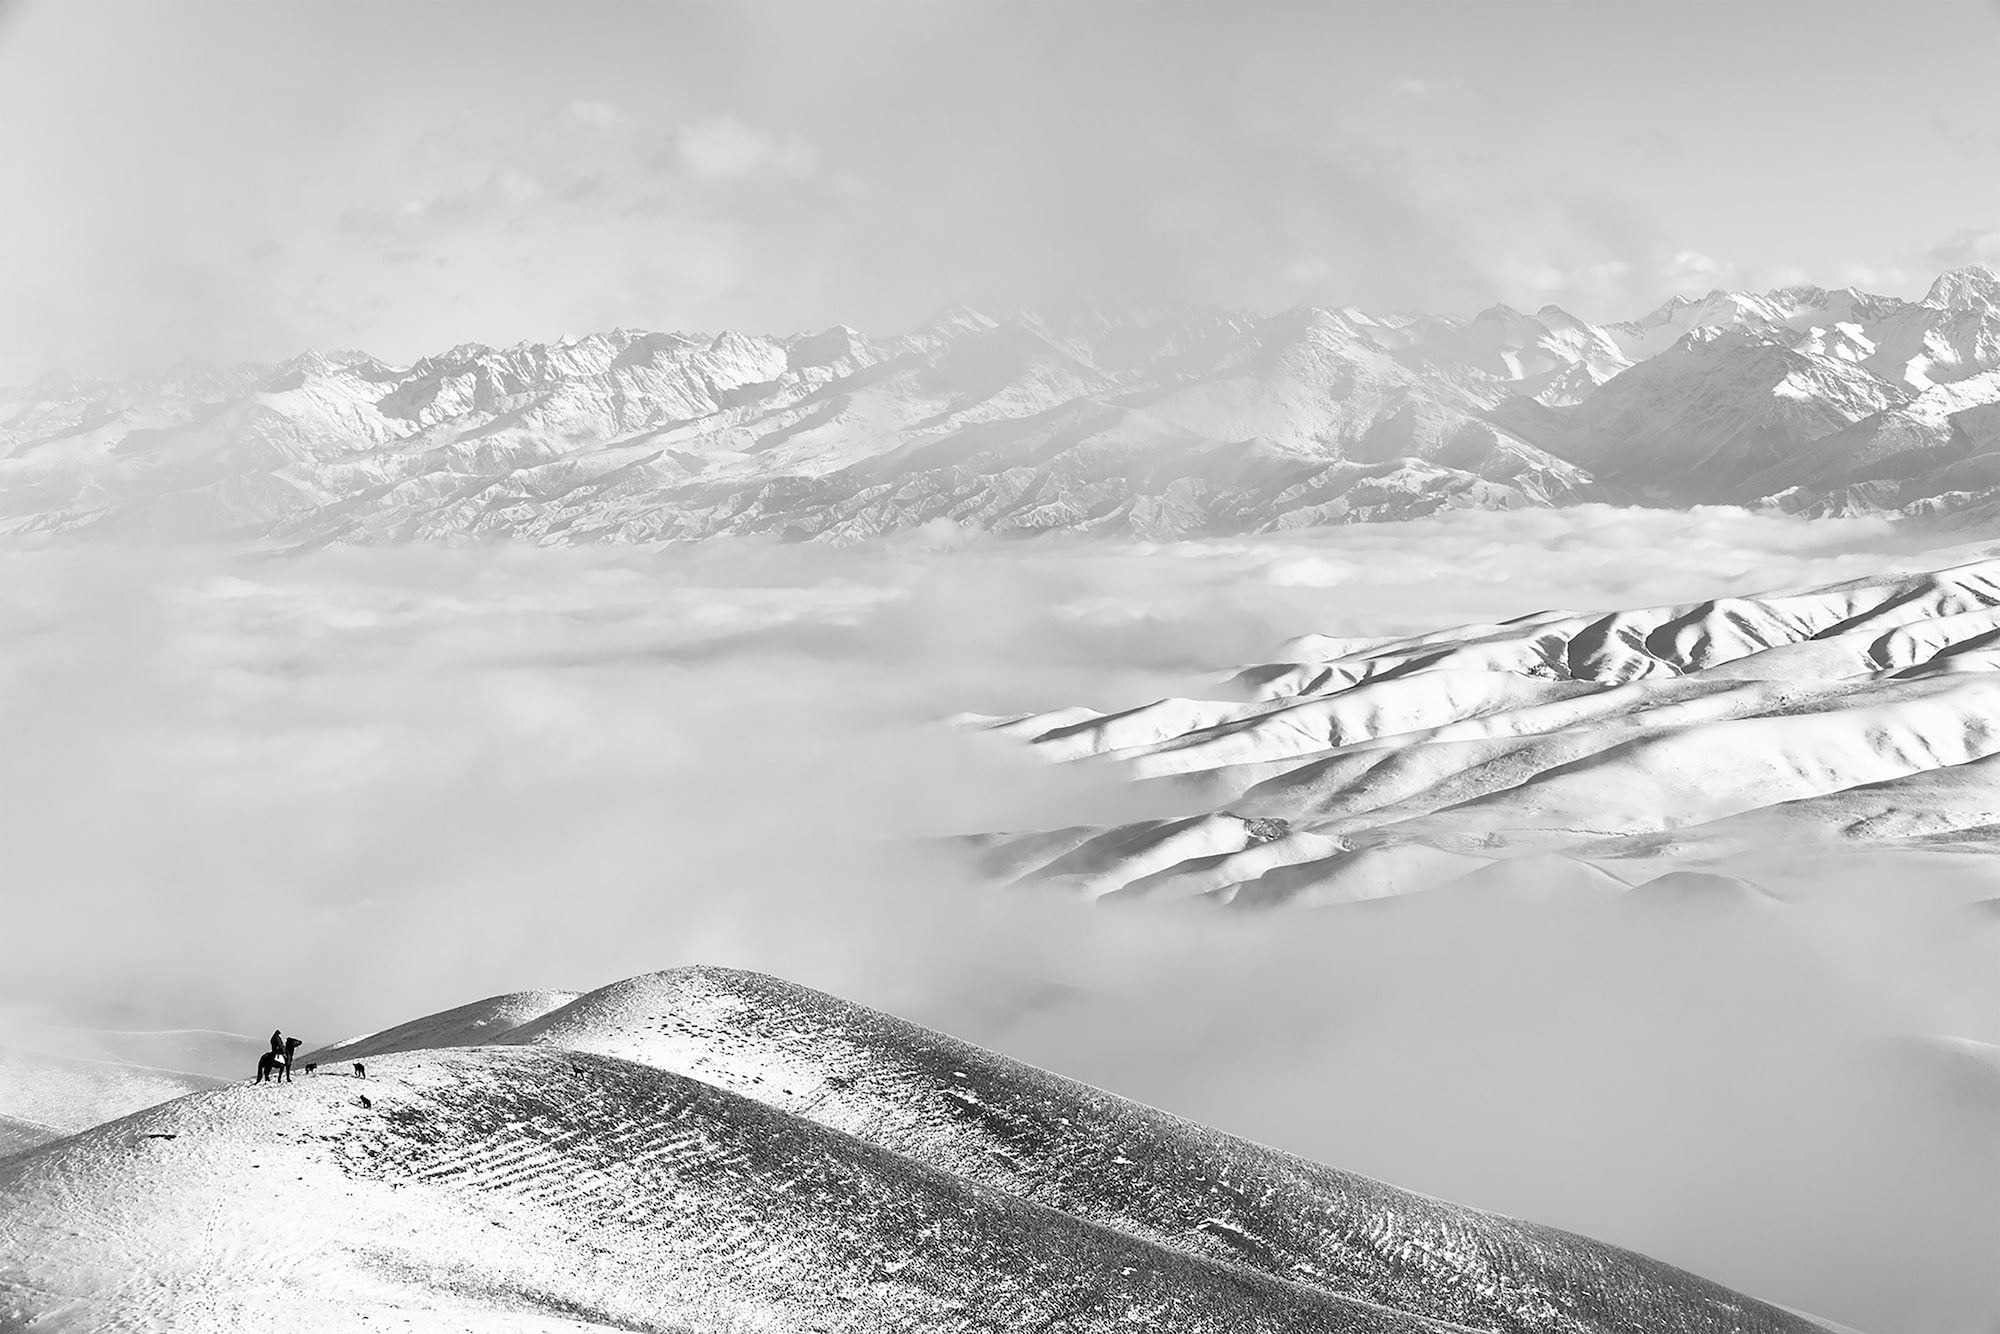 frederik buyckx sony alpha 7RM3 lone horse rider sits atop a mountain looking at distant snow covered landscape